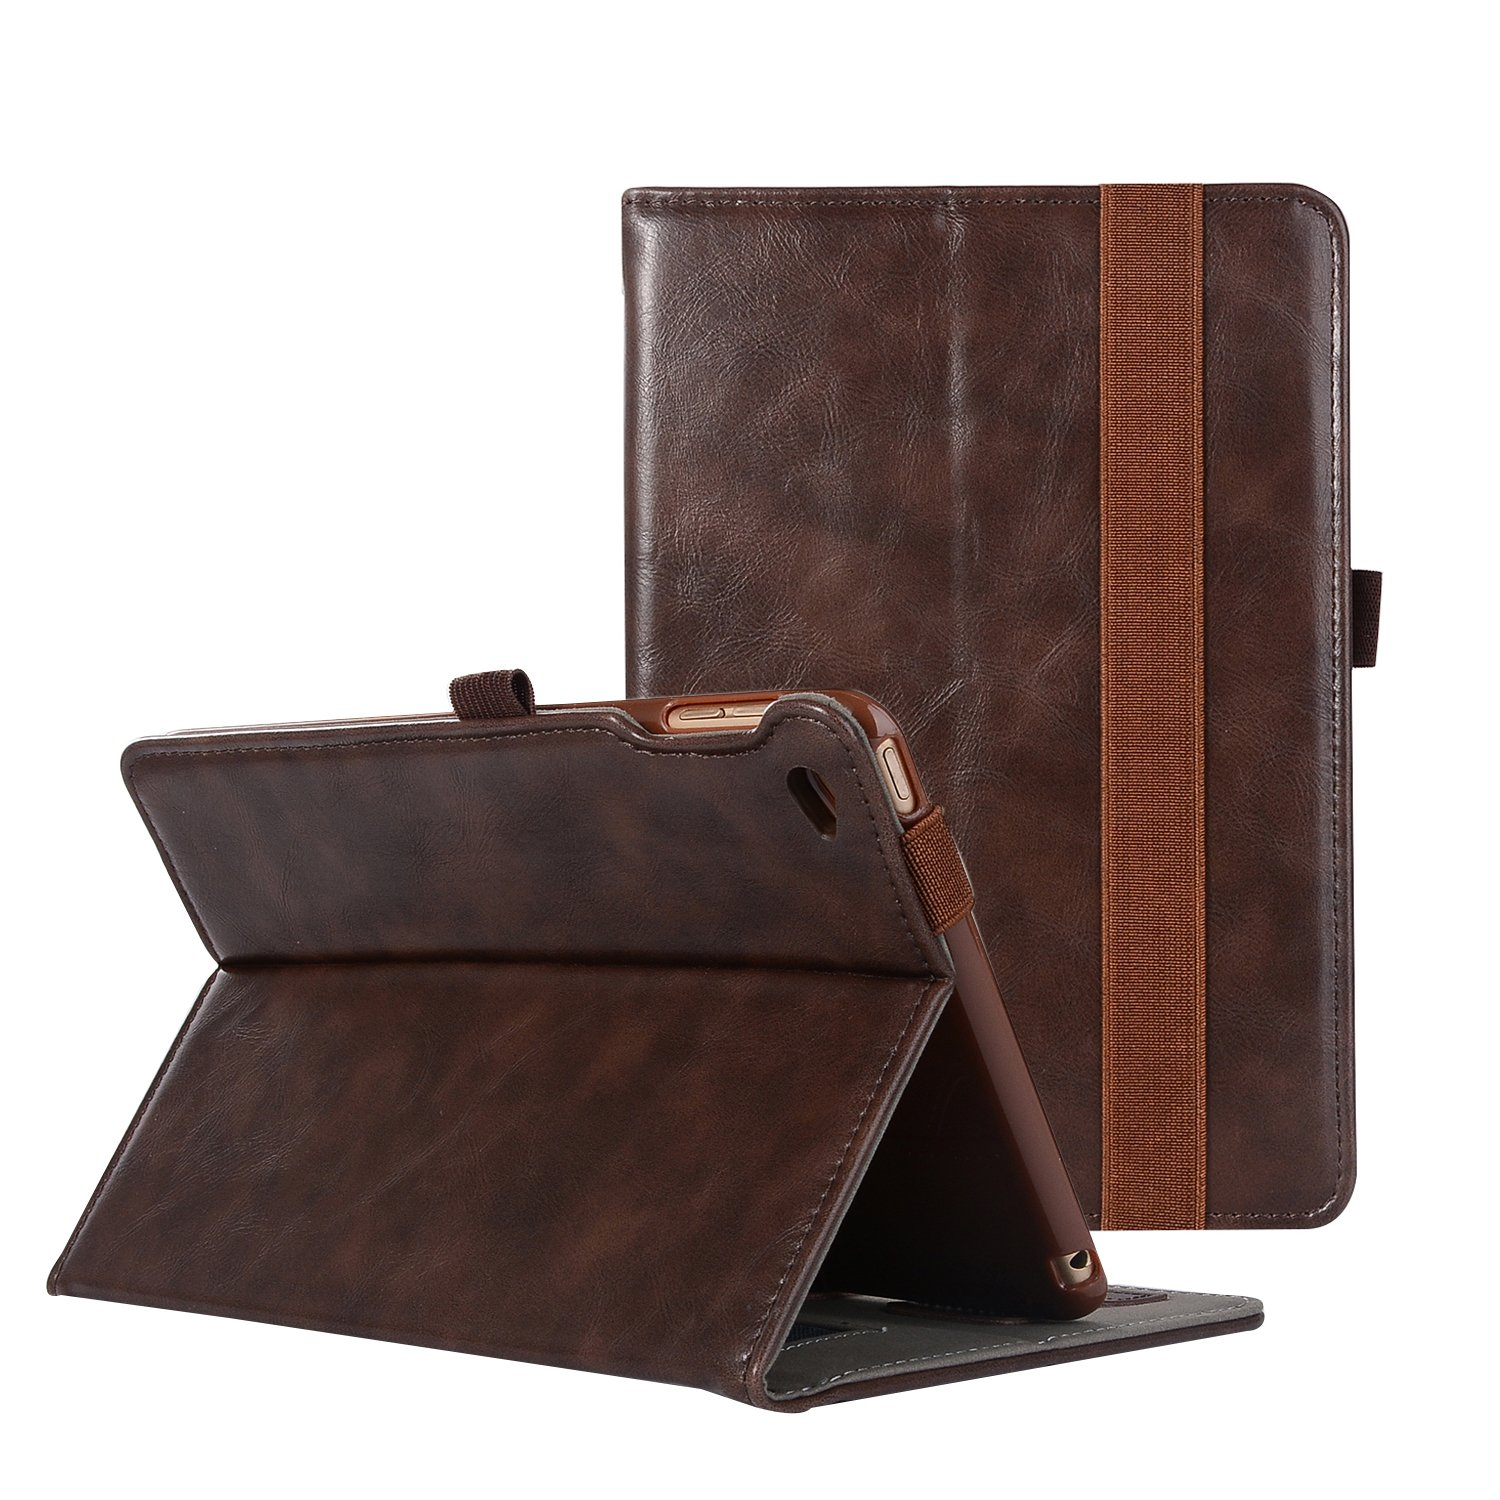 iPad Mini 4 Case, ZAOX Premium Leather Folio Stand Protective Slim Wallet Card Holder Smart Cover with Functional Hand Elastic Strap Multi-Angle Viewing Shell for Apple iPad Mini 4 (Vintage Brown)